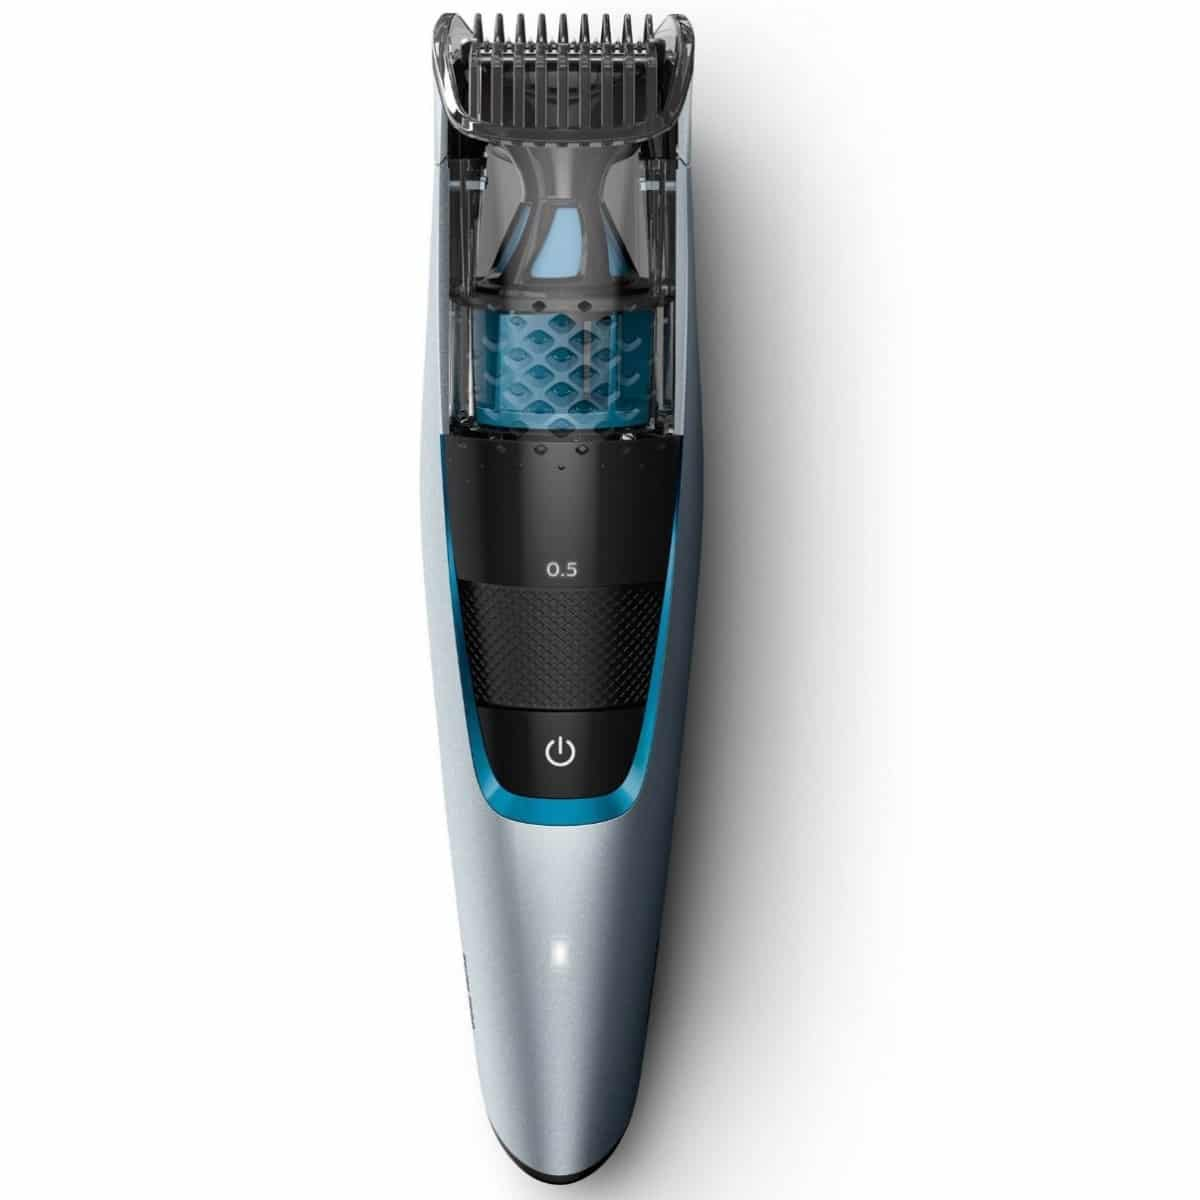 Tondeuse à barbe Philips BT7210/15